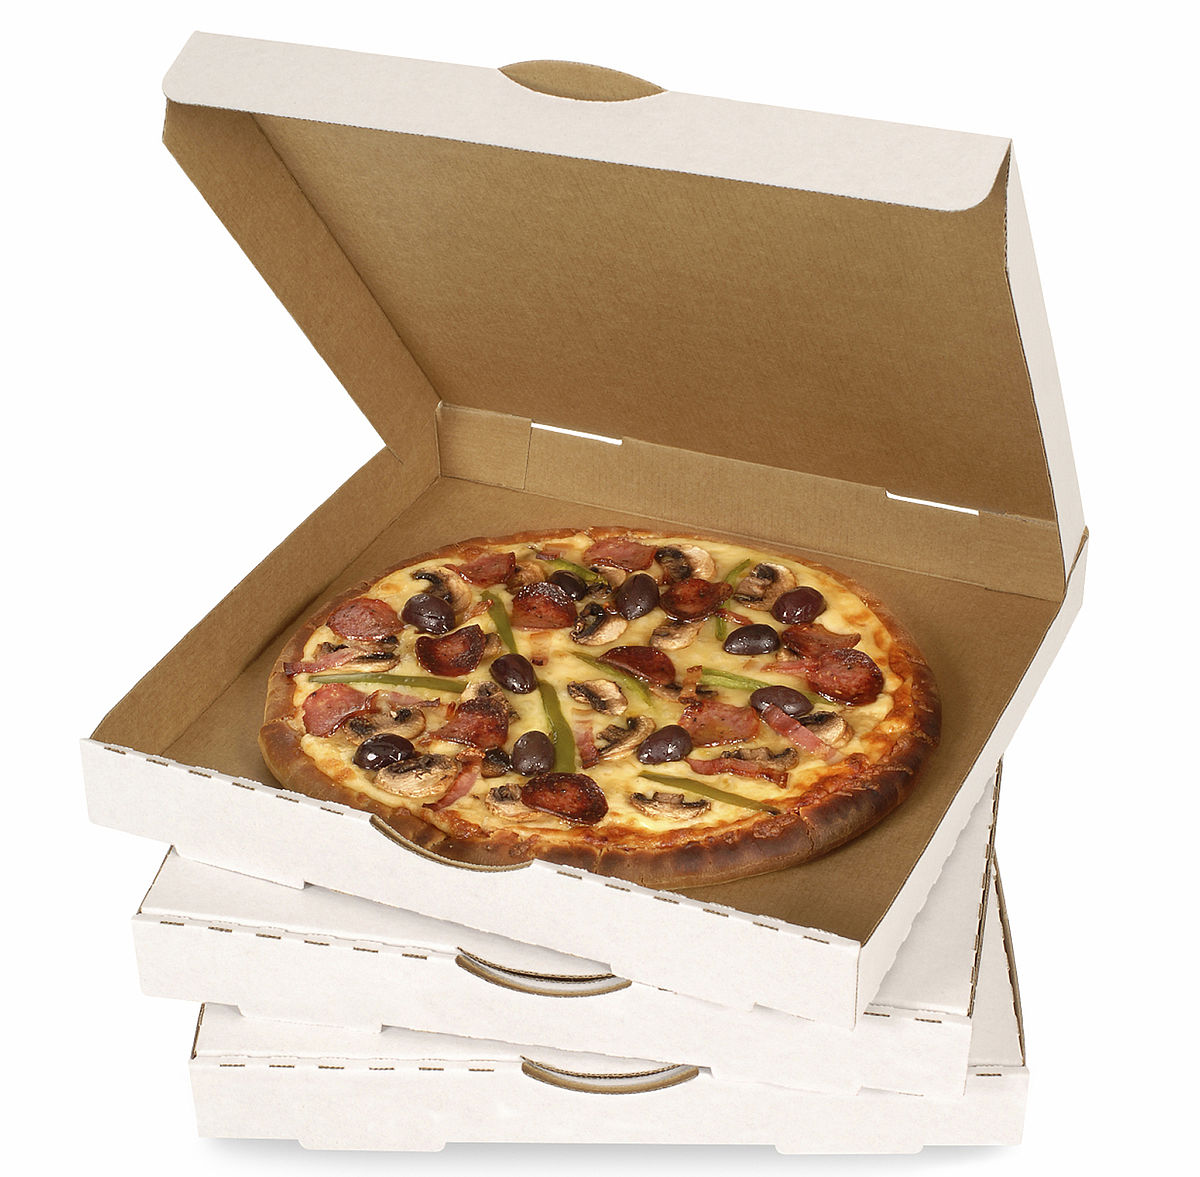 Cardboard box with pizza